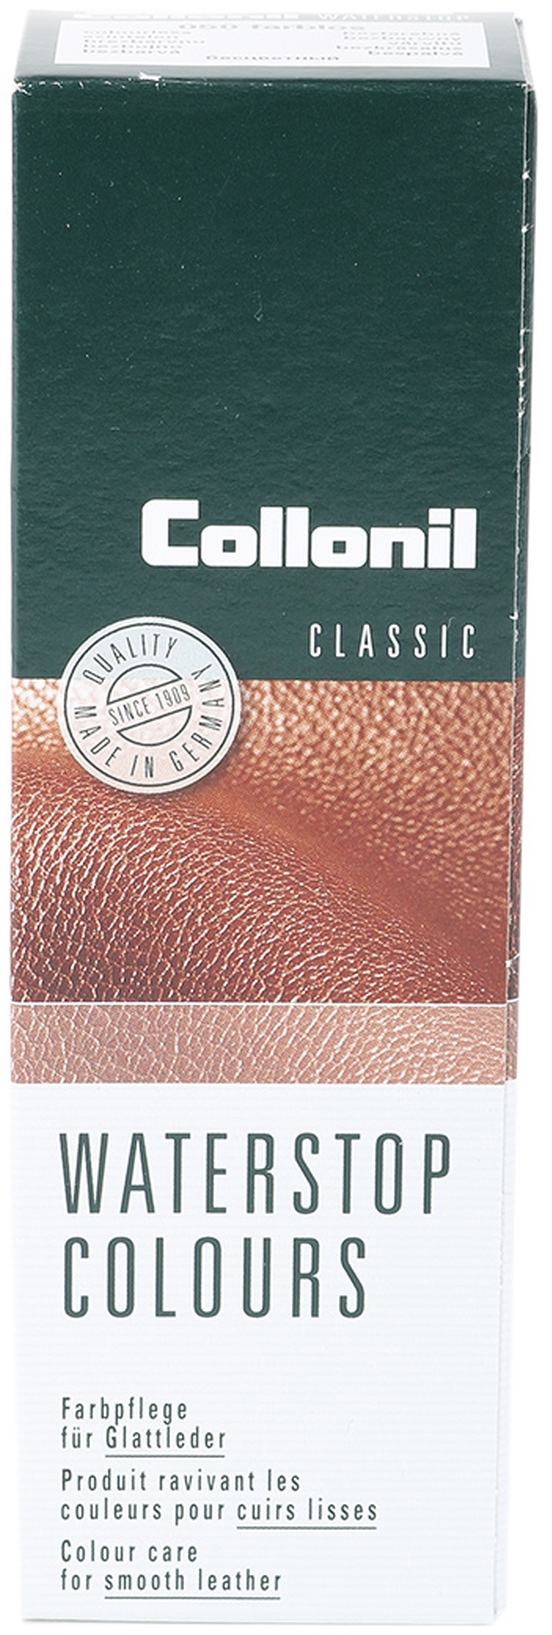 Collonil Waterstop Leather Cream Chestnut photo 0